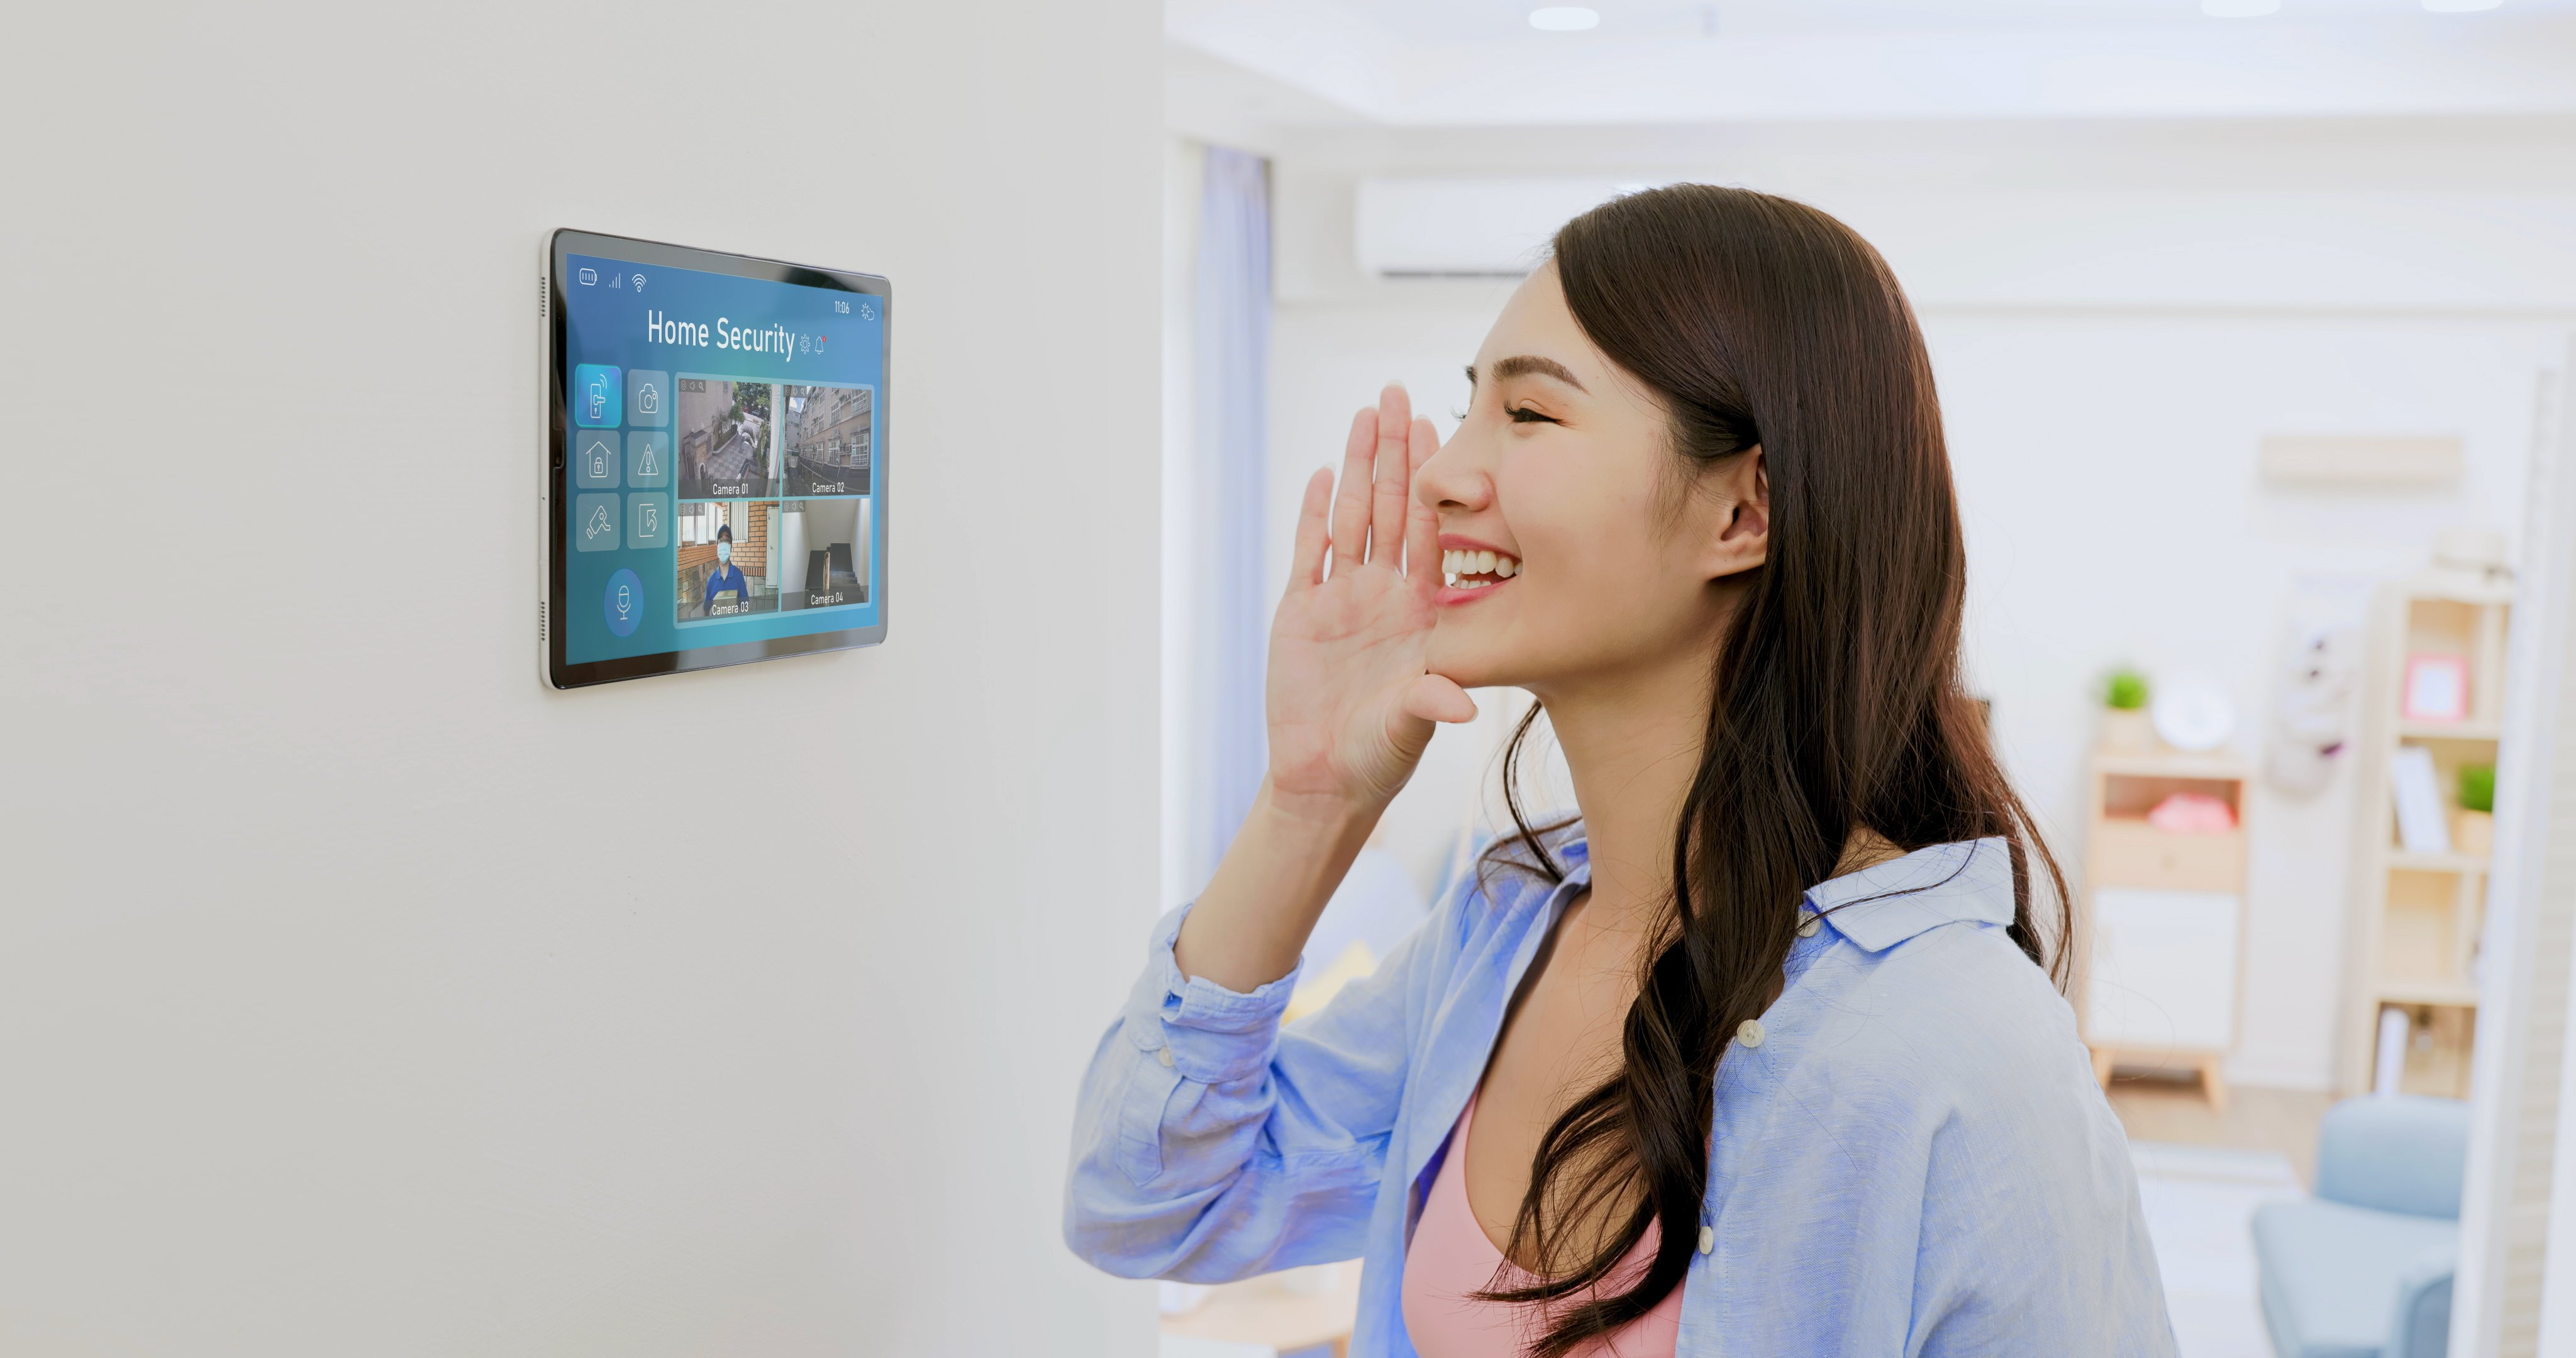 Smiling Asian woman looking at home security camera On Digital Tablet of wall - talking to the delivery man standing outdoor holding a package